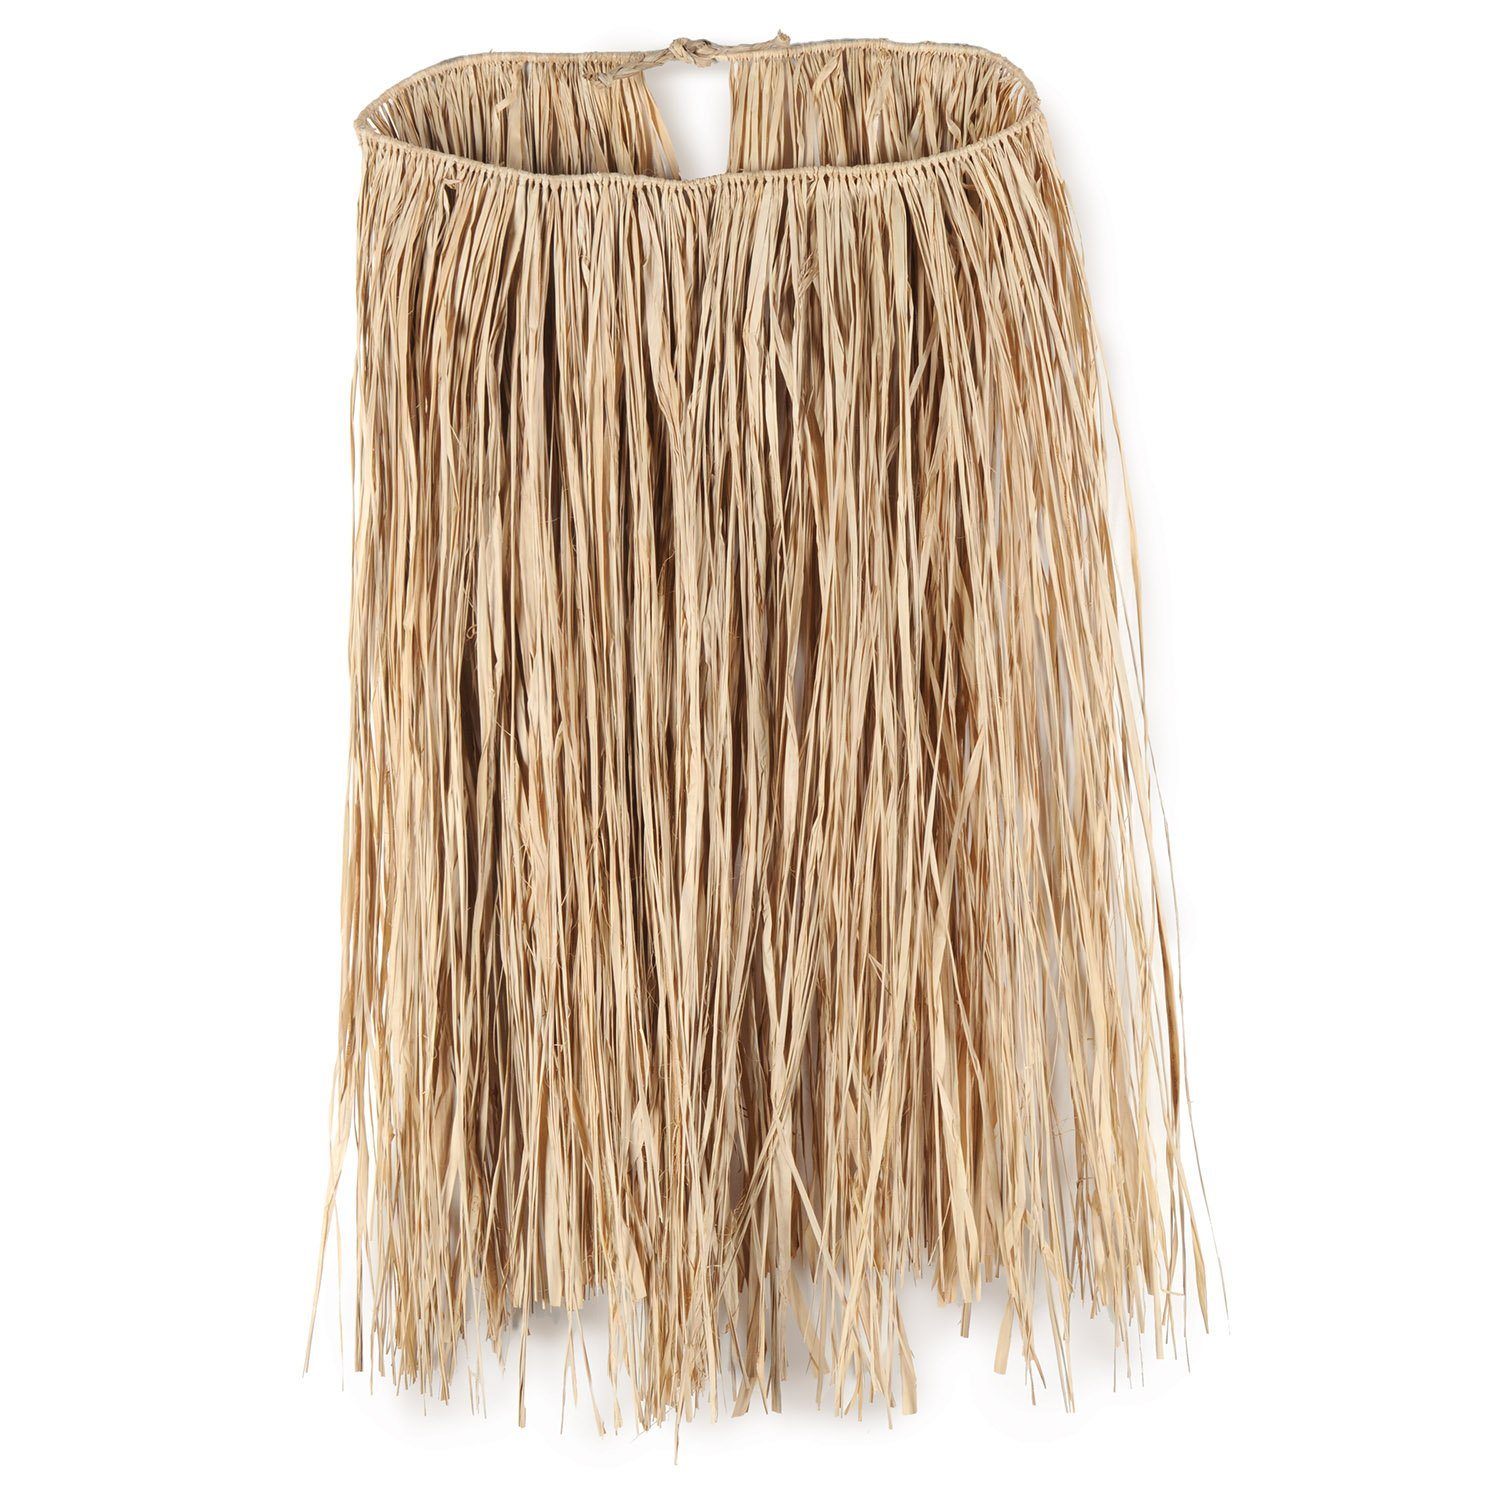 Beistle 50431-N Child Raffia Hula Skirt for Party, 22 by 20-Inch